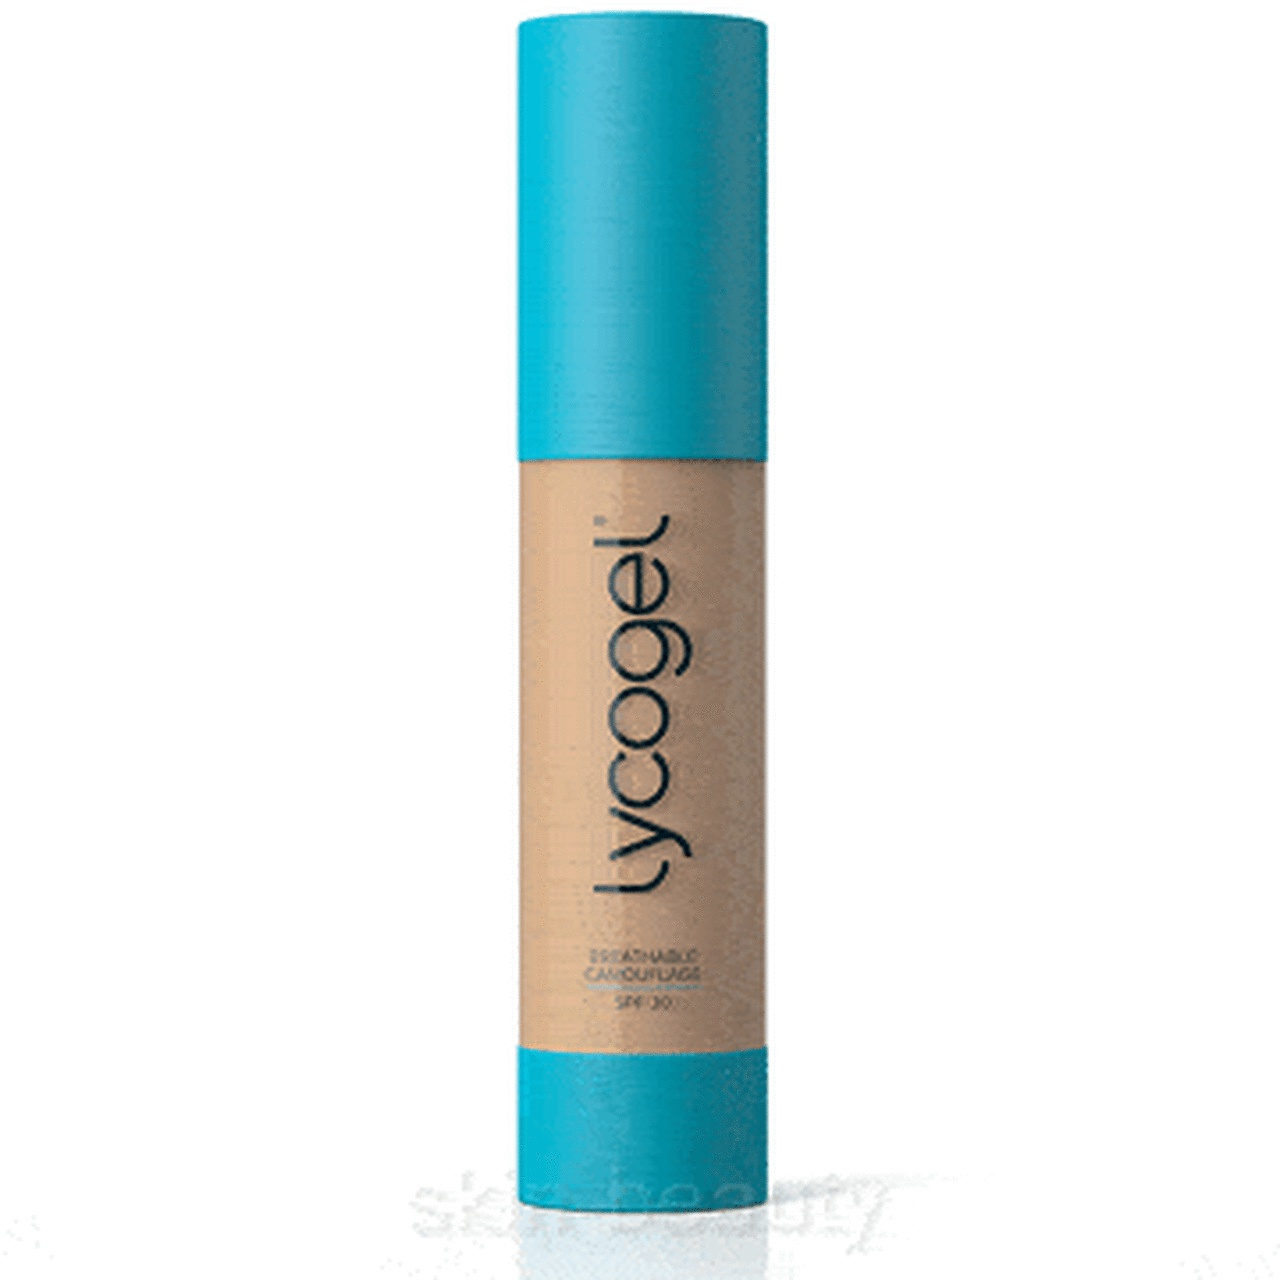 Lycogel Breathable Camouflage Foundation Spf 30